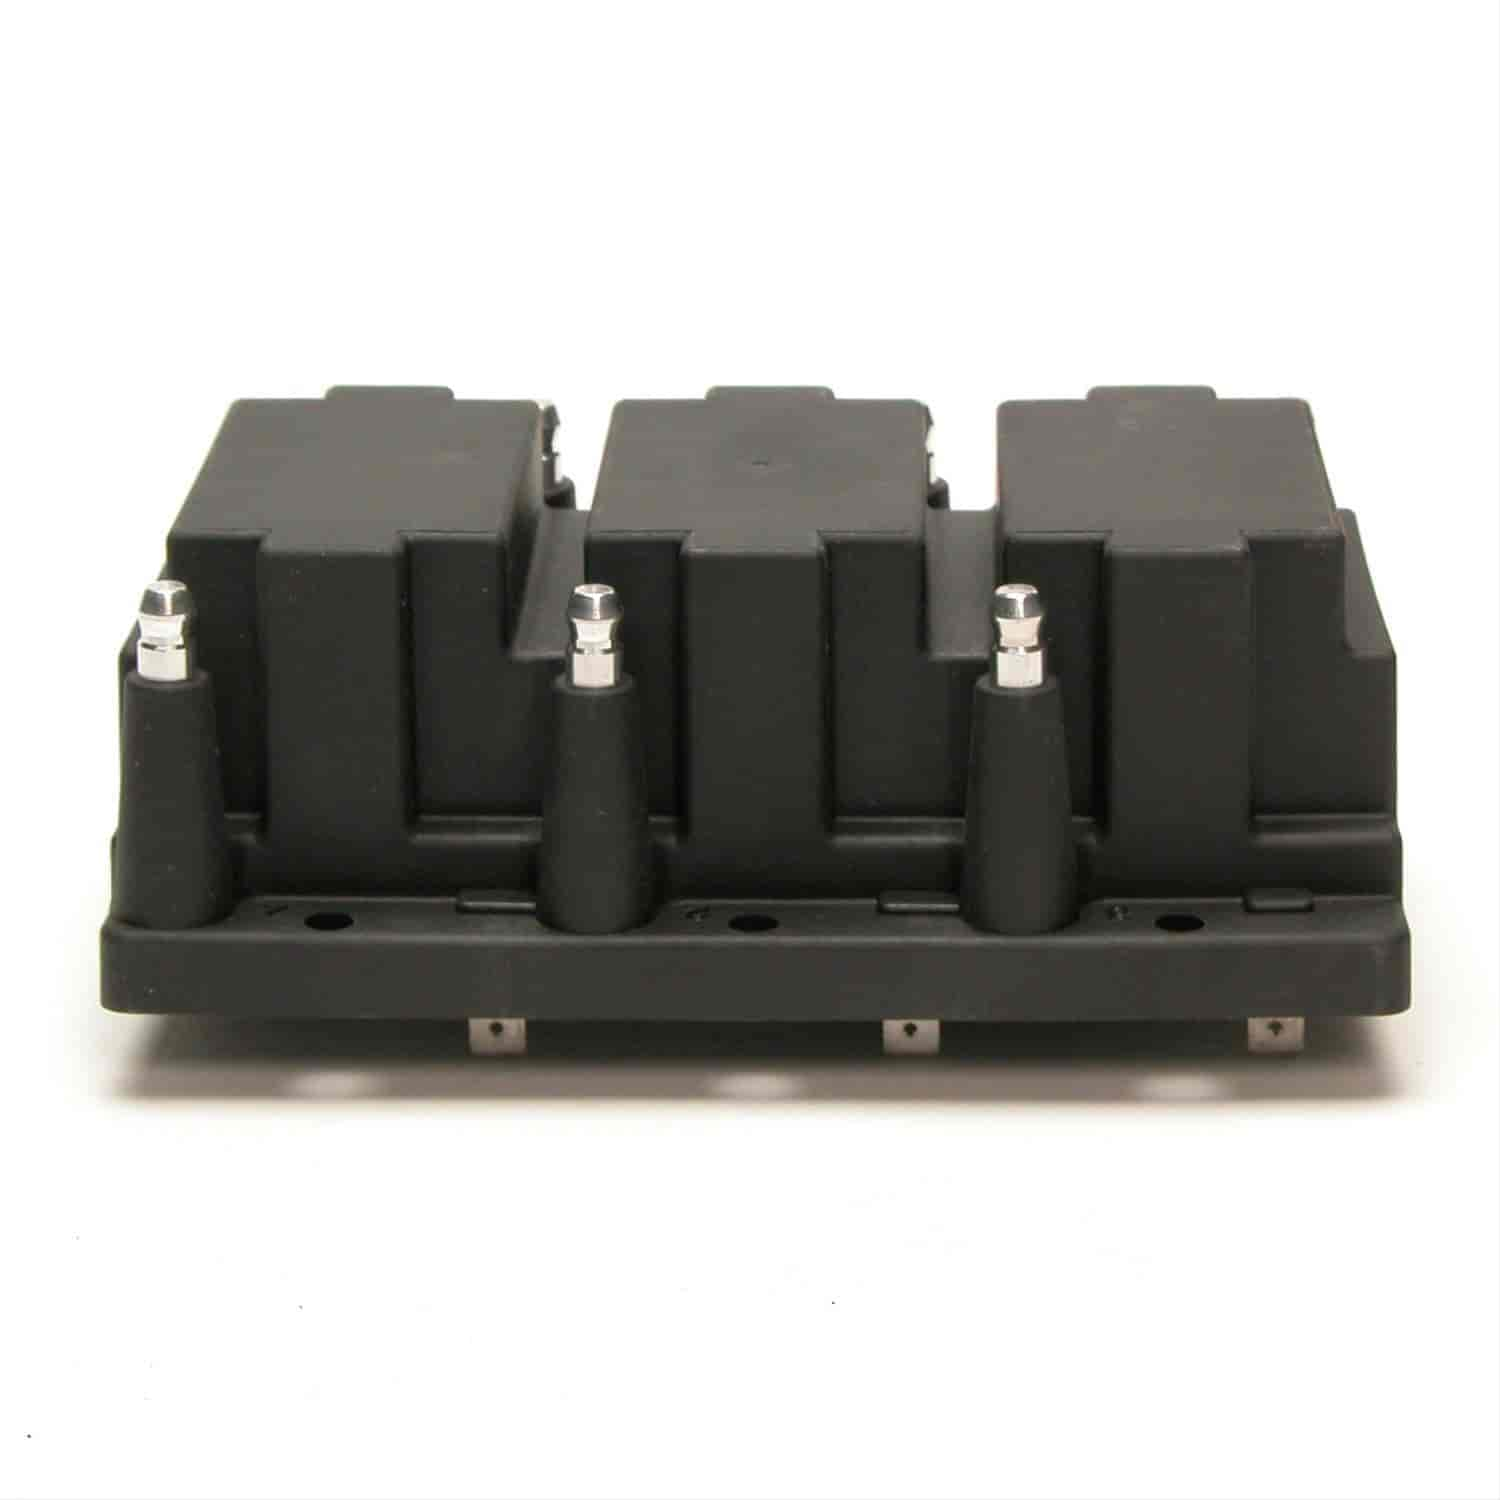 Delphi GN10139 - Delphi Ignition Coils & Modules